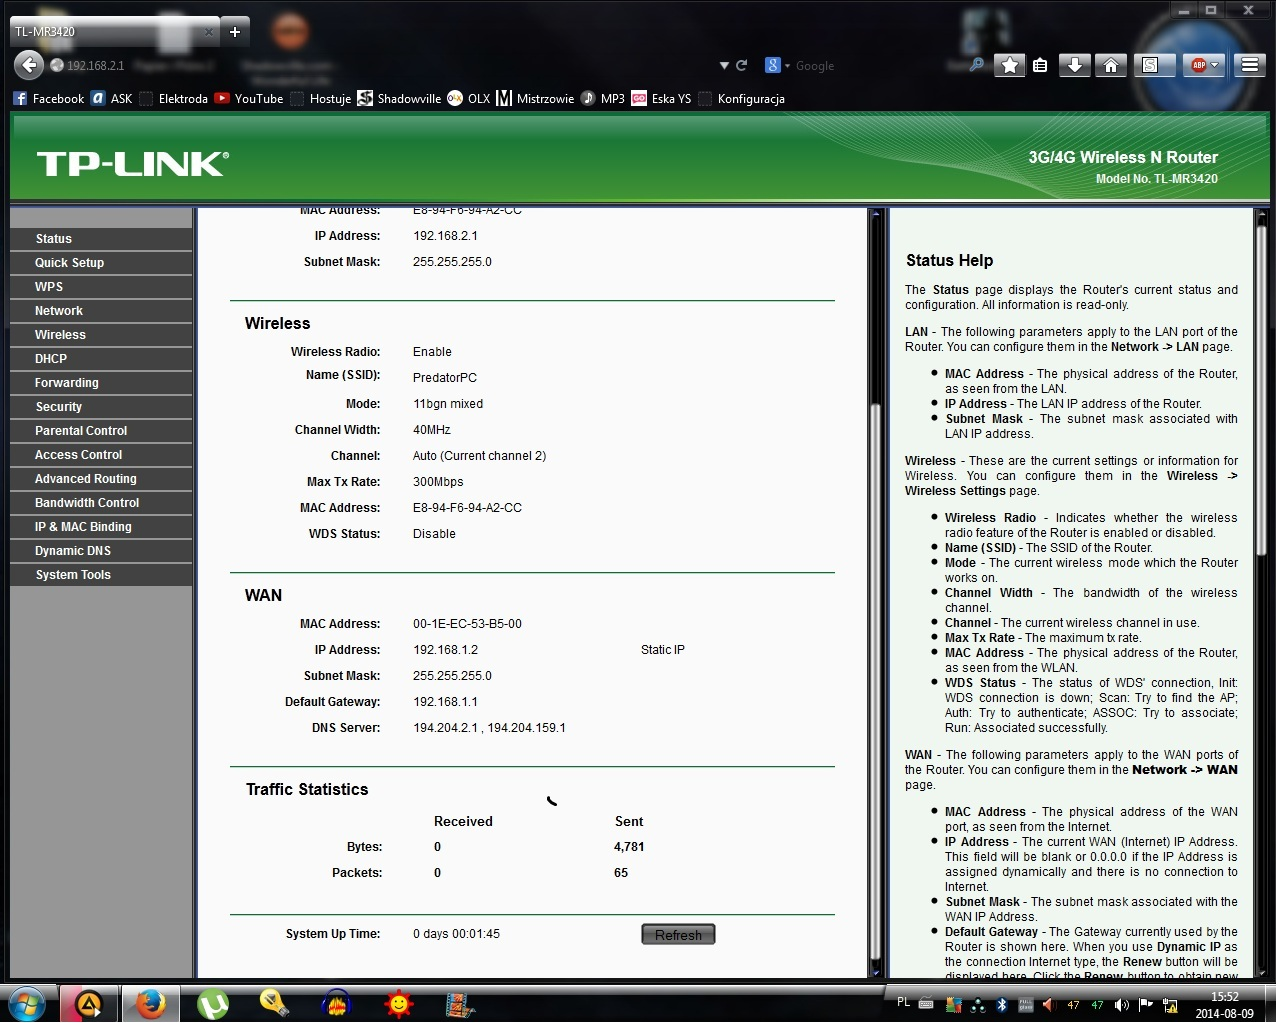 TP-Link MR3420 - Brak internetu.